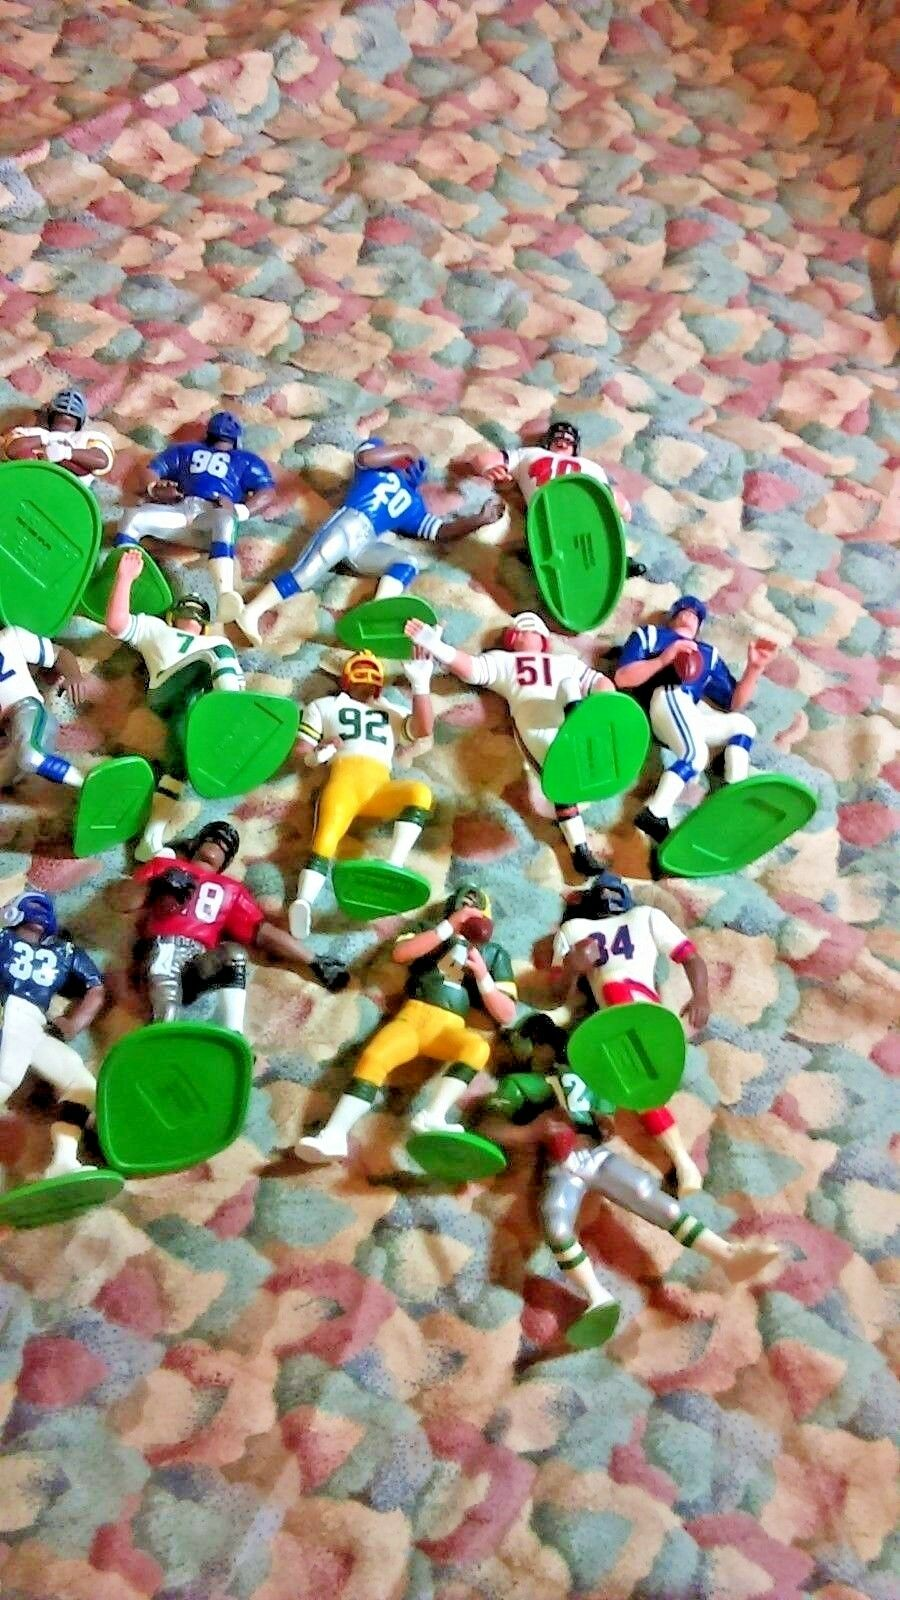 Lot of 14   Baseball Players Players Players Action Figures Toys  NFLP Gift For Kids e811f6